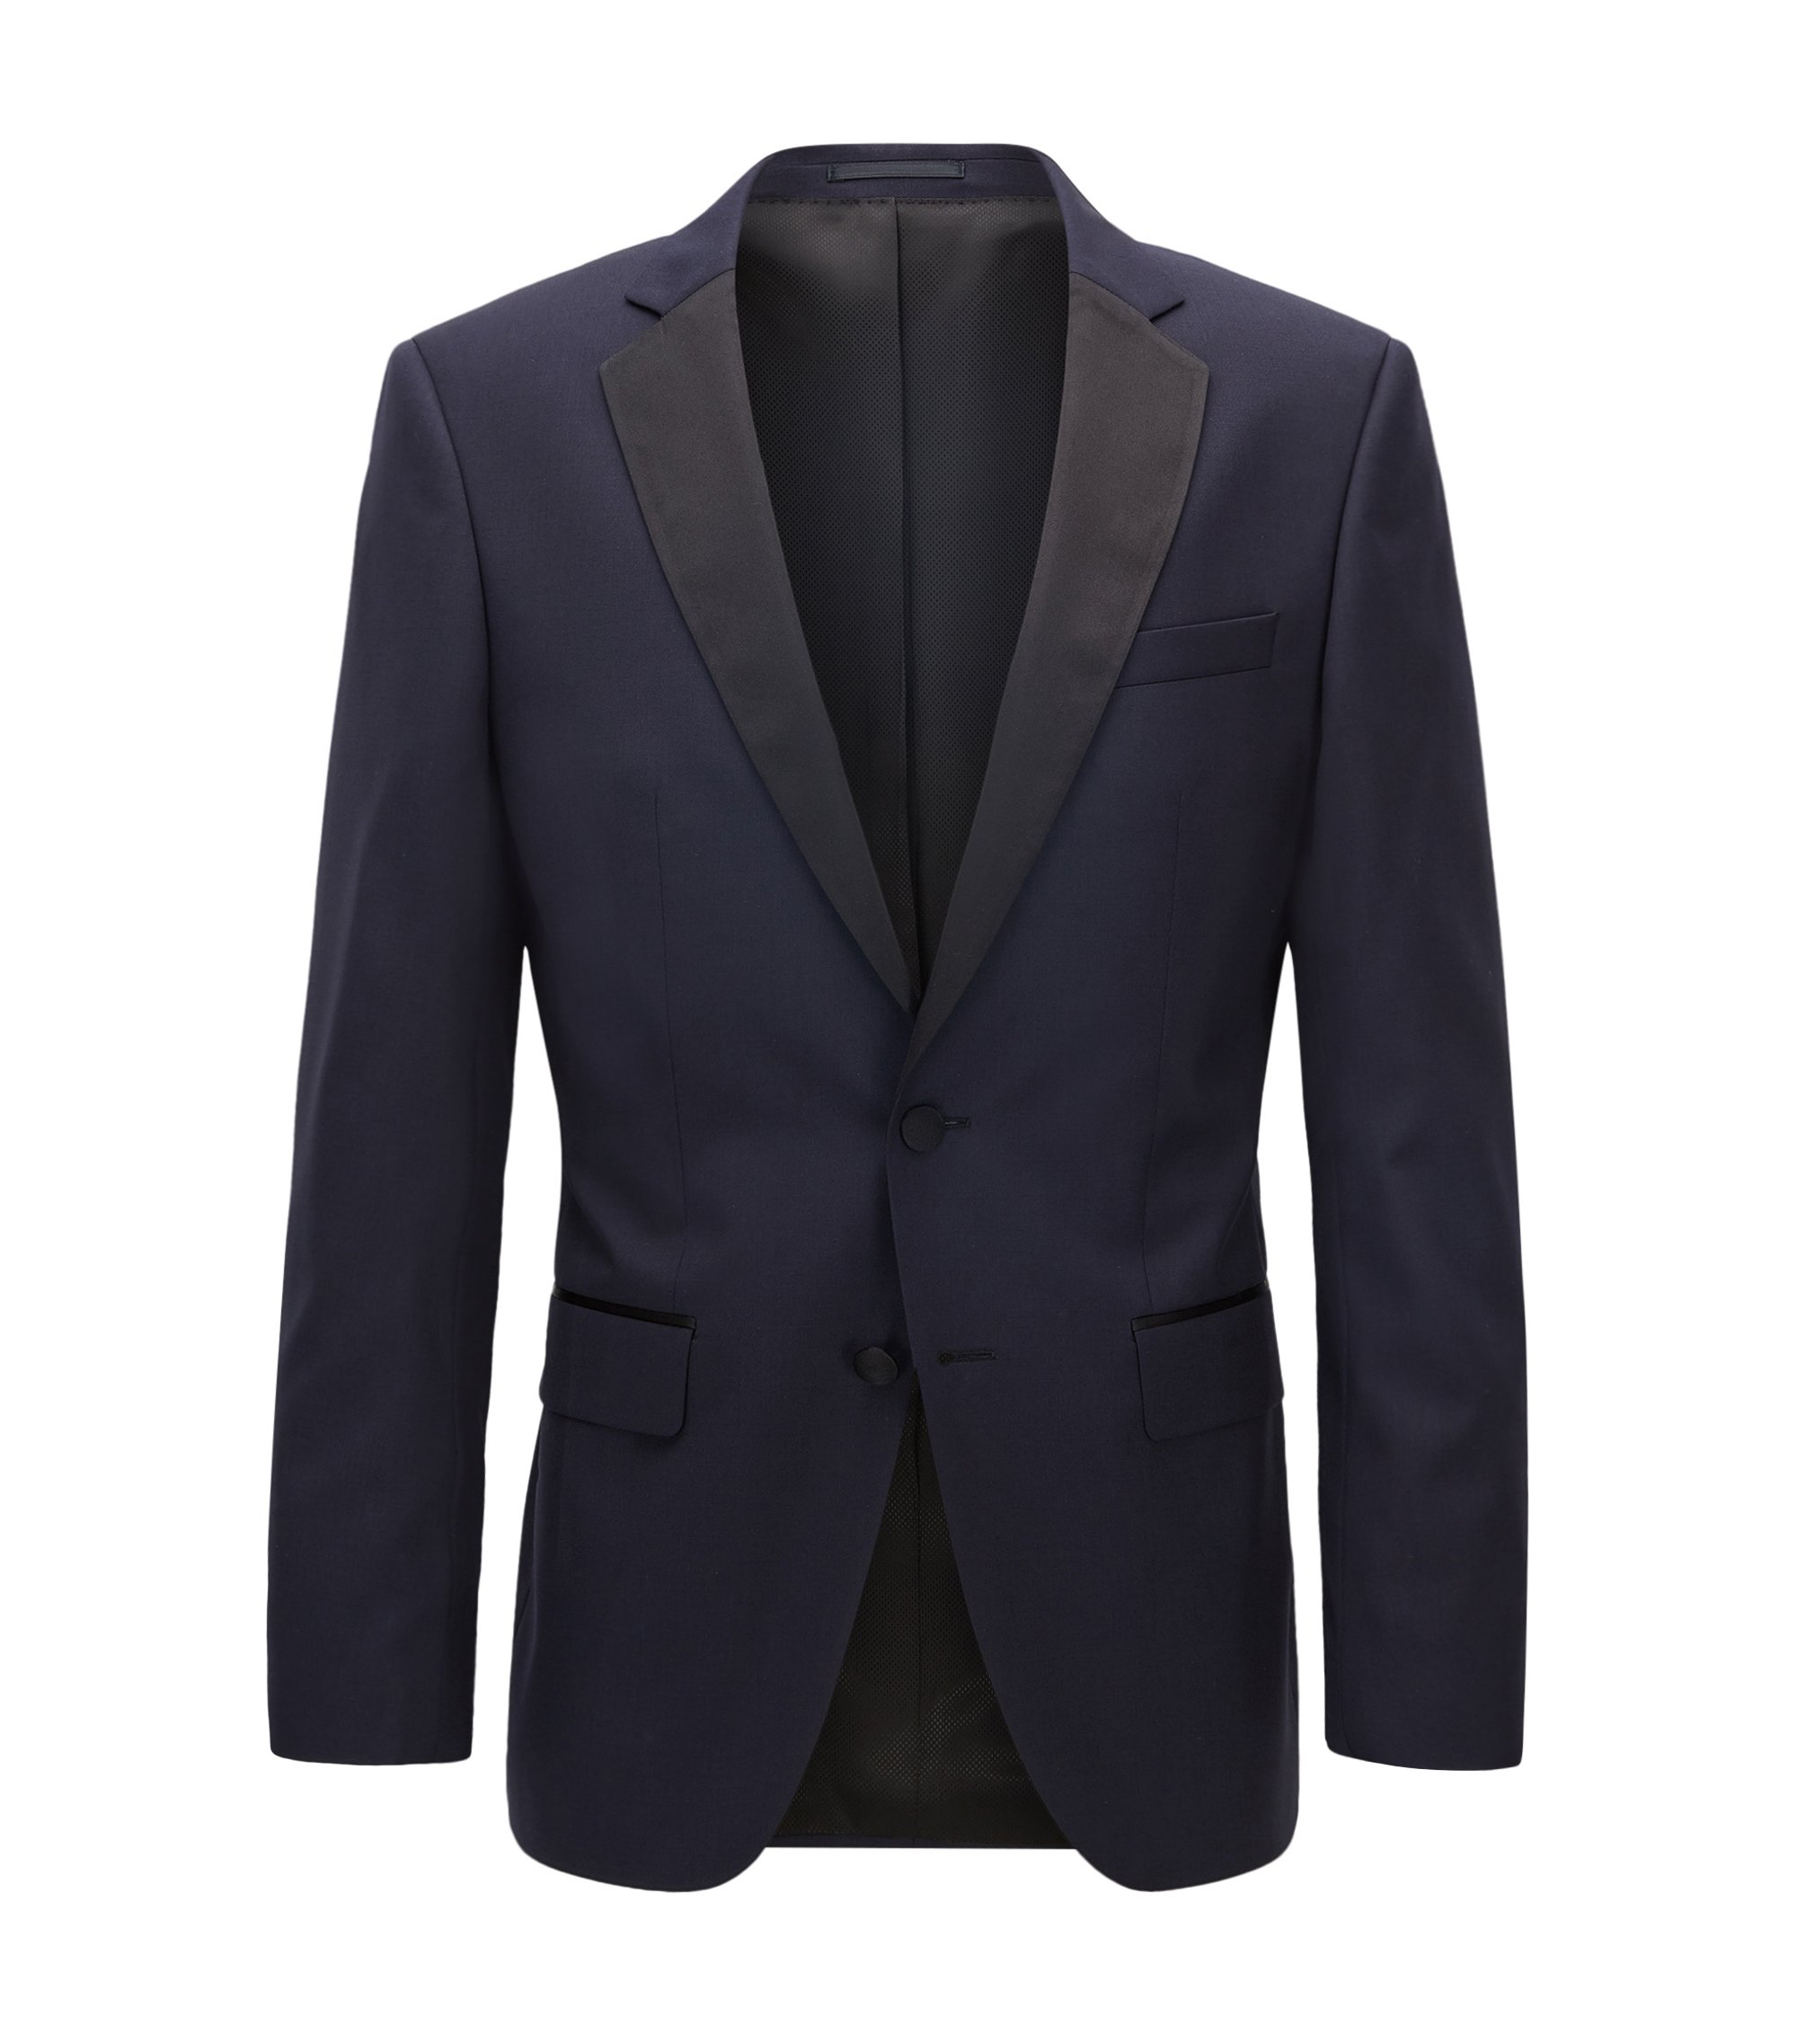 Italian Virgin Wool Suit Jacket, Slim Fit | Hence CYL, Dark Blue